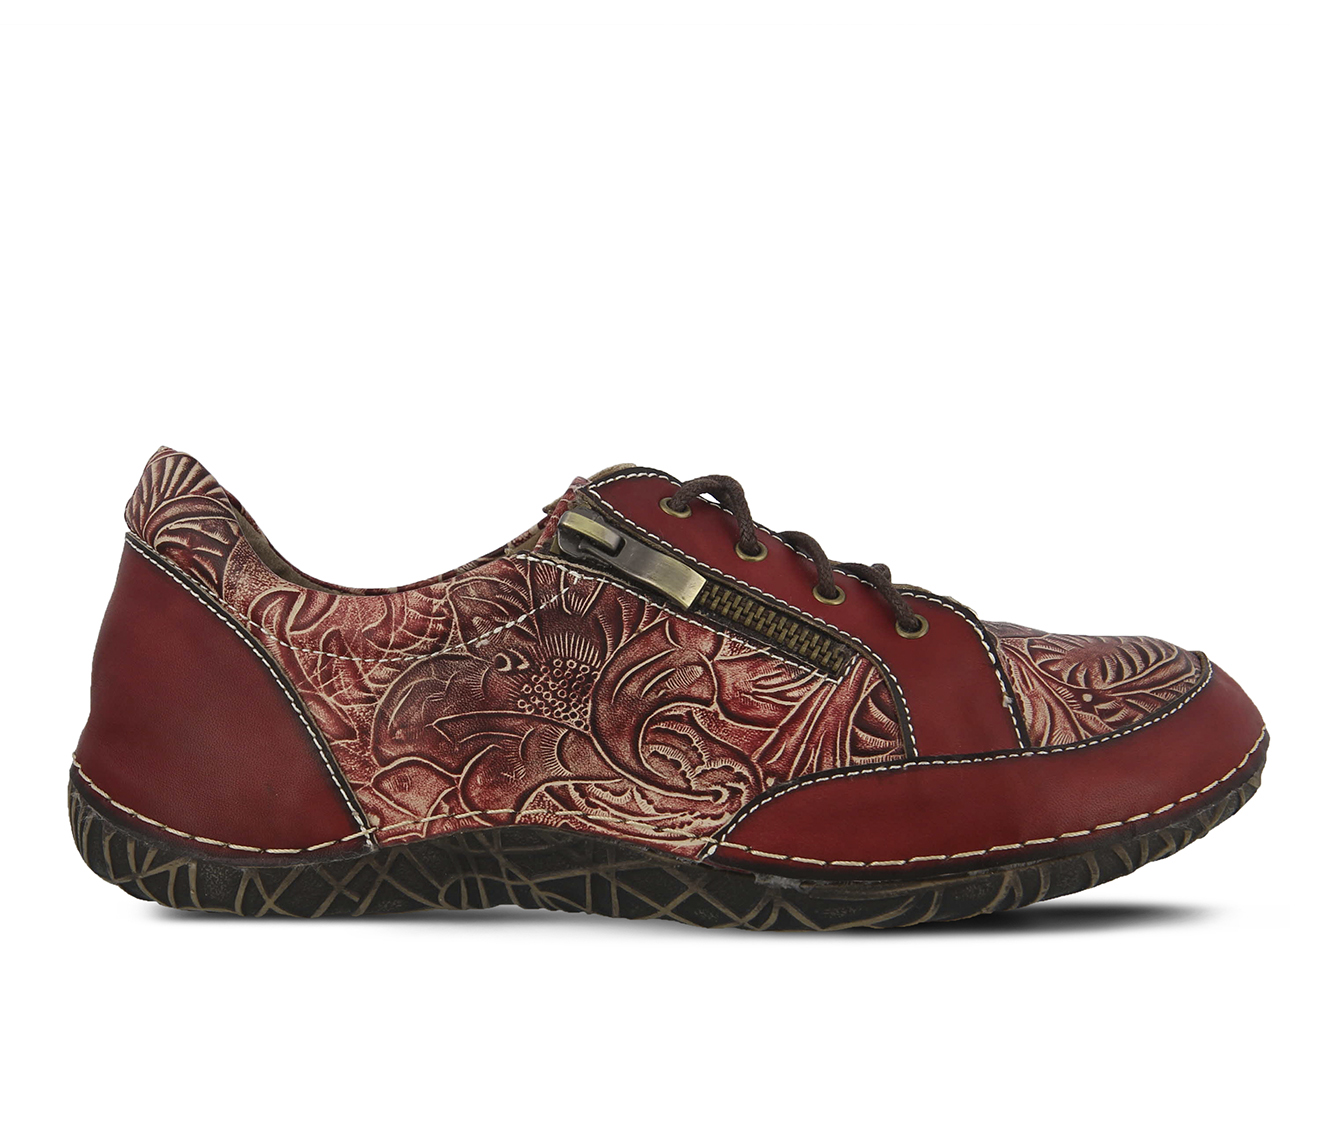 L'Artiste Cluny Women's Shoe (Red Leather)